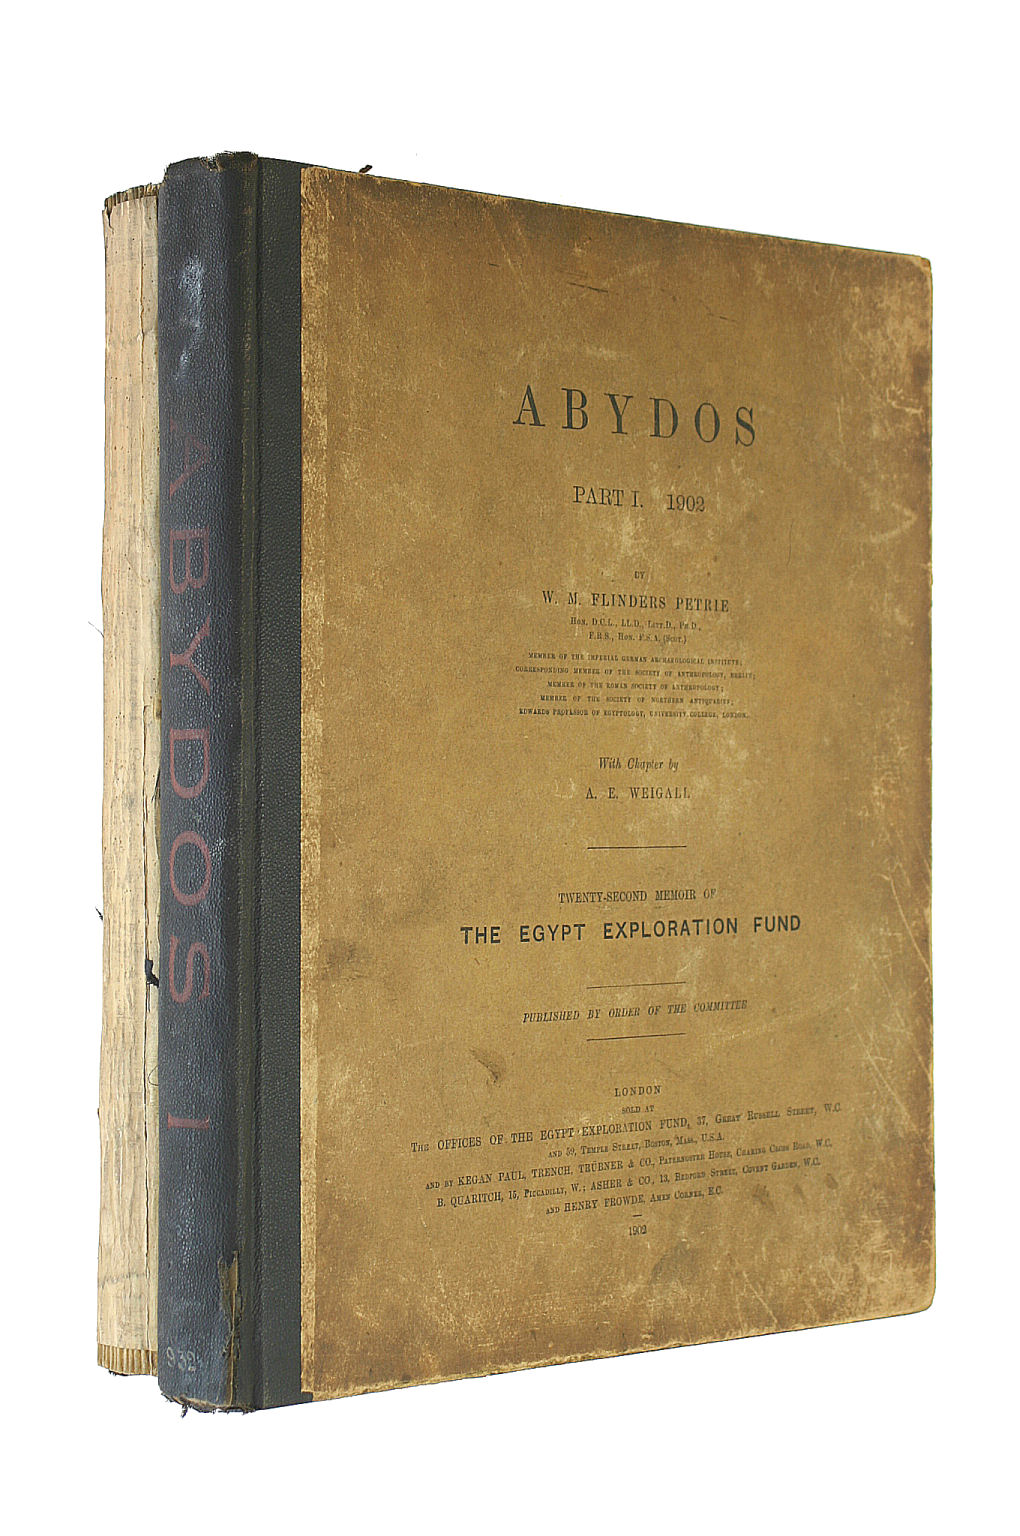 Image for Abydos (Part I: 22nd. Memoir of the Egypt Exploration Fund): (Part I: 22nd. Memoir of the Egypt Exploration Fund) (Part II: 24th. Memoir of the Egypt Exploration Fund)